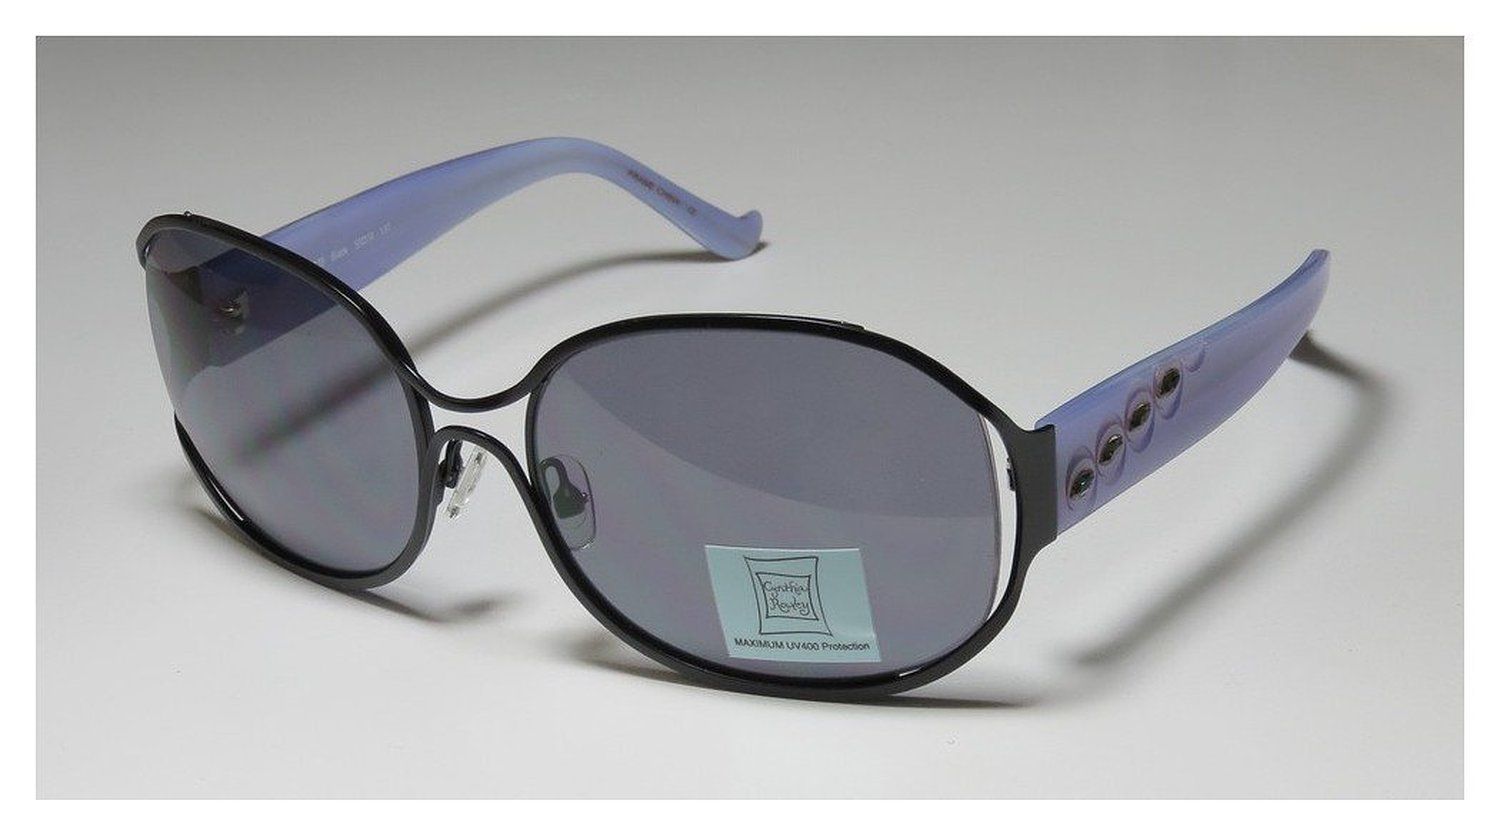 Cynthia Rowley 0235 Womans Round Sunglasses